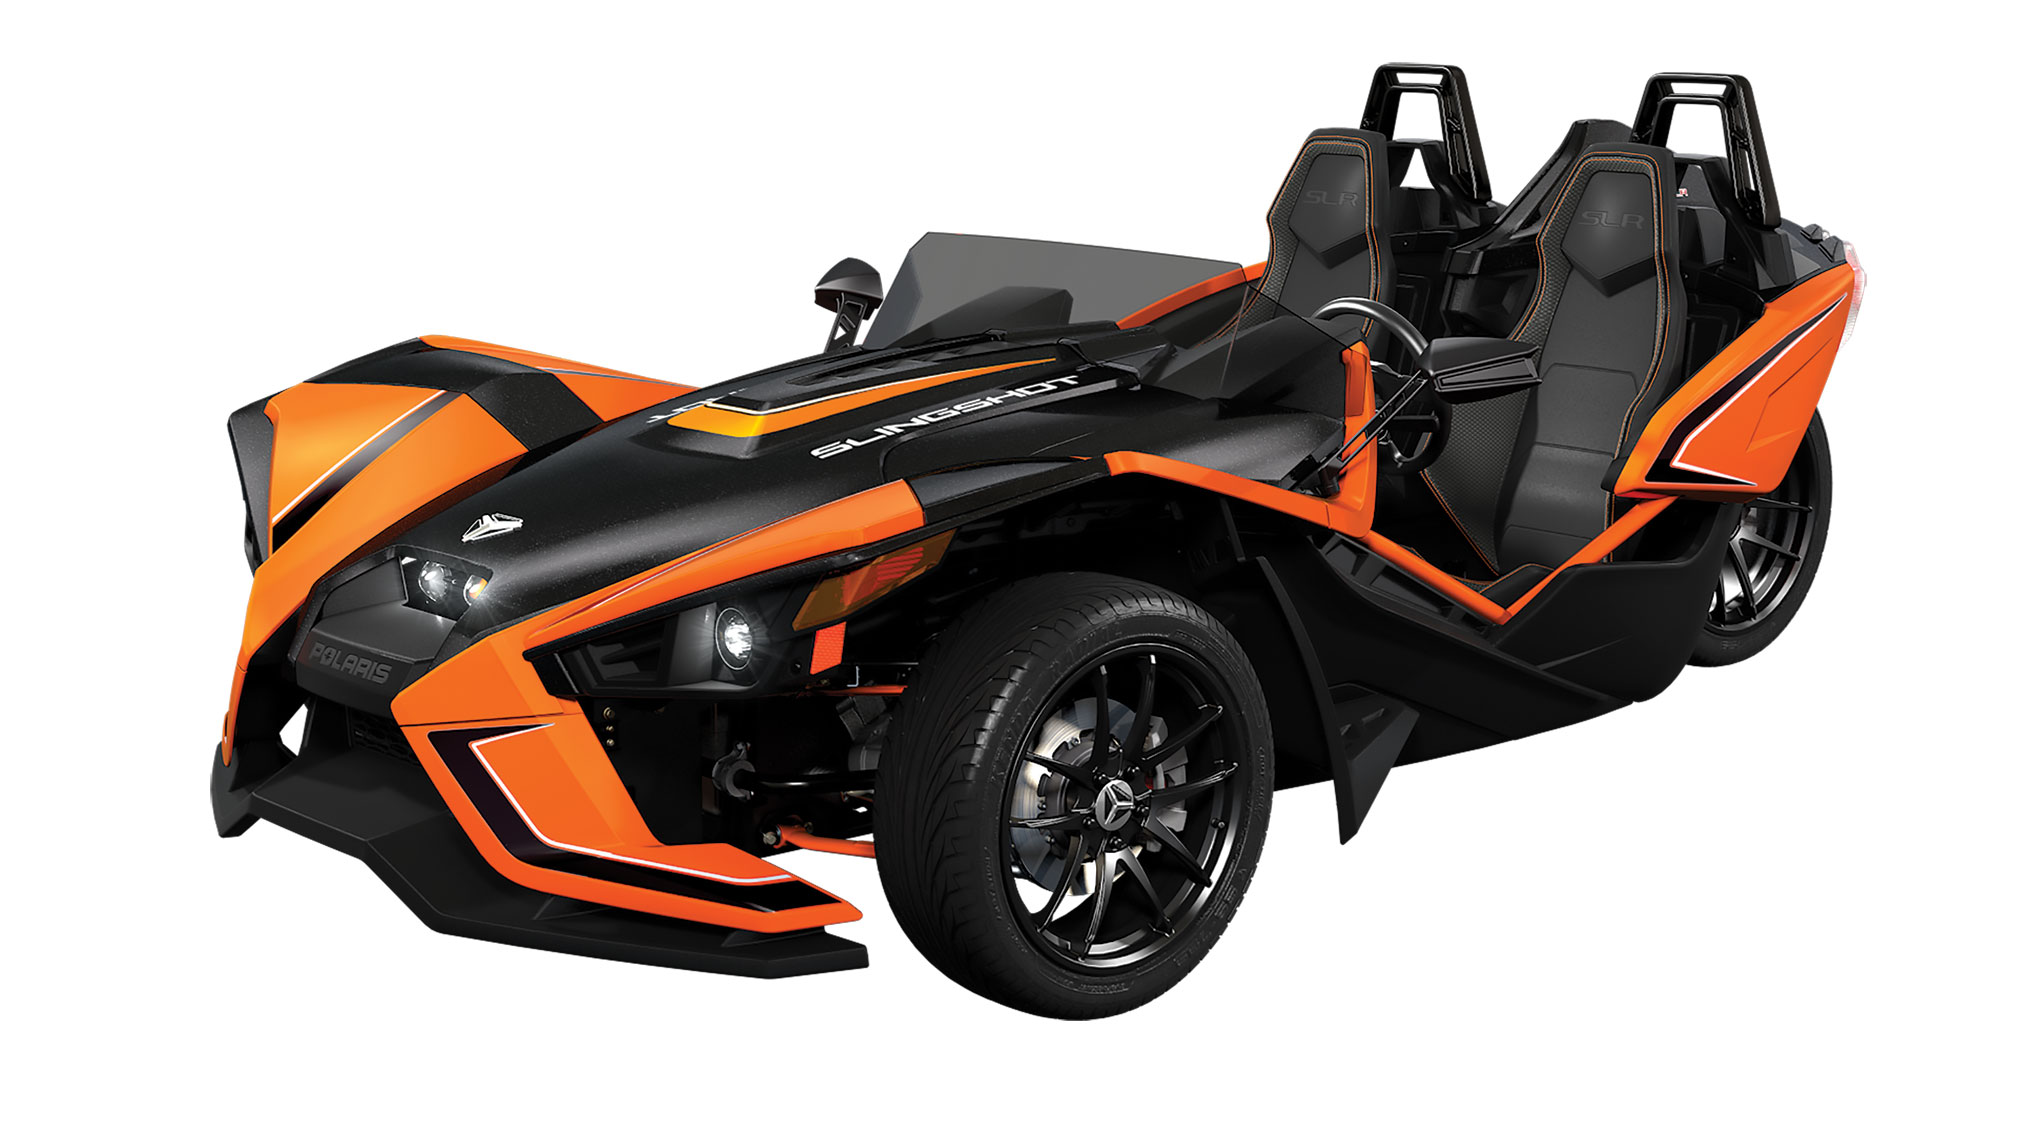 2018 Polaris Slingshot Slr Review Totalmotorcycle